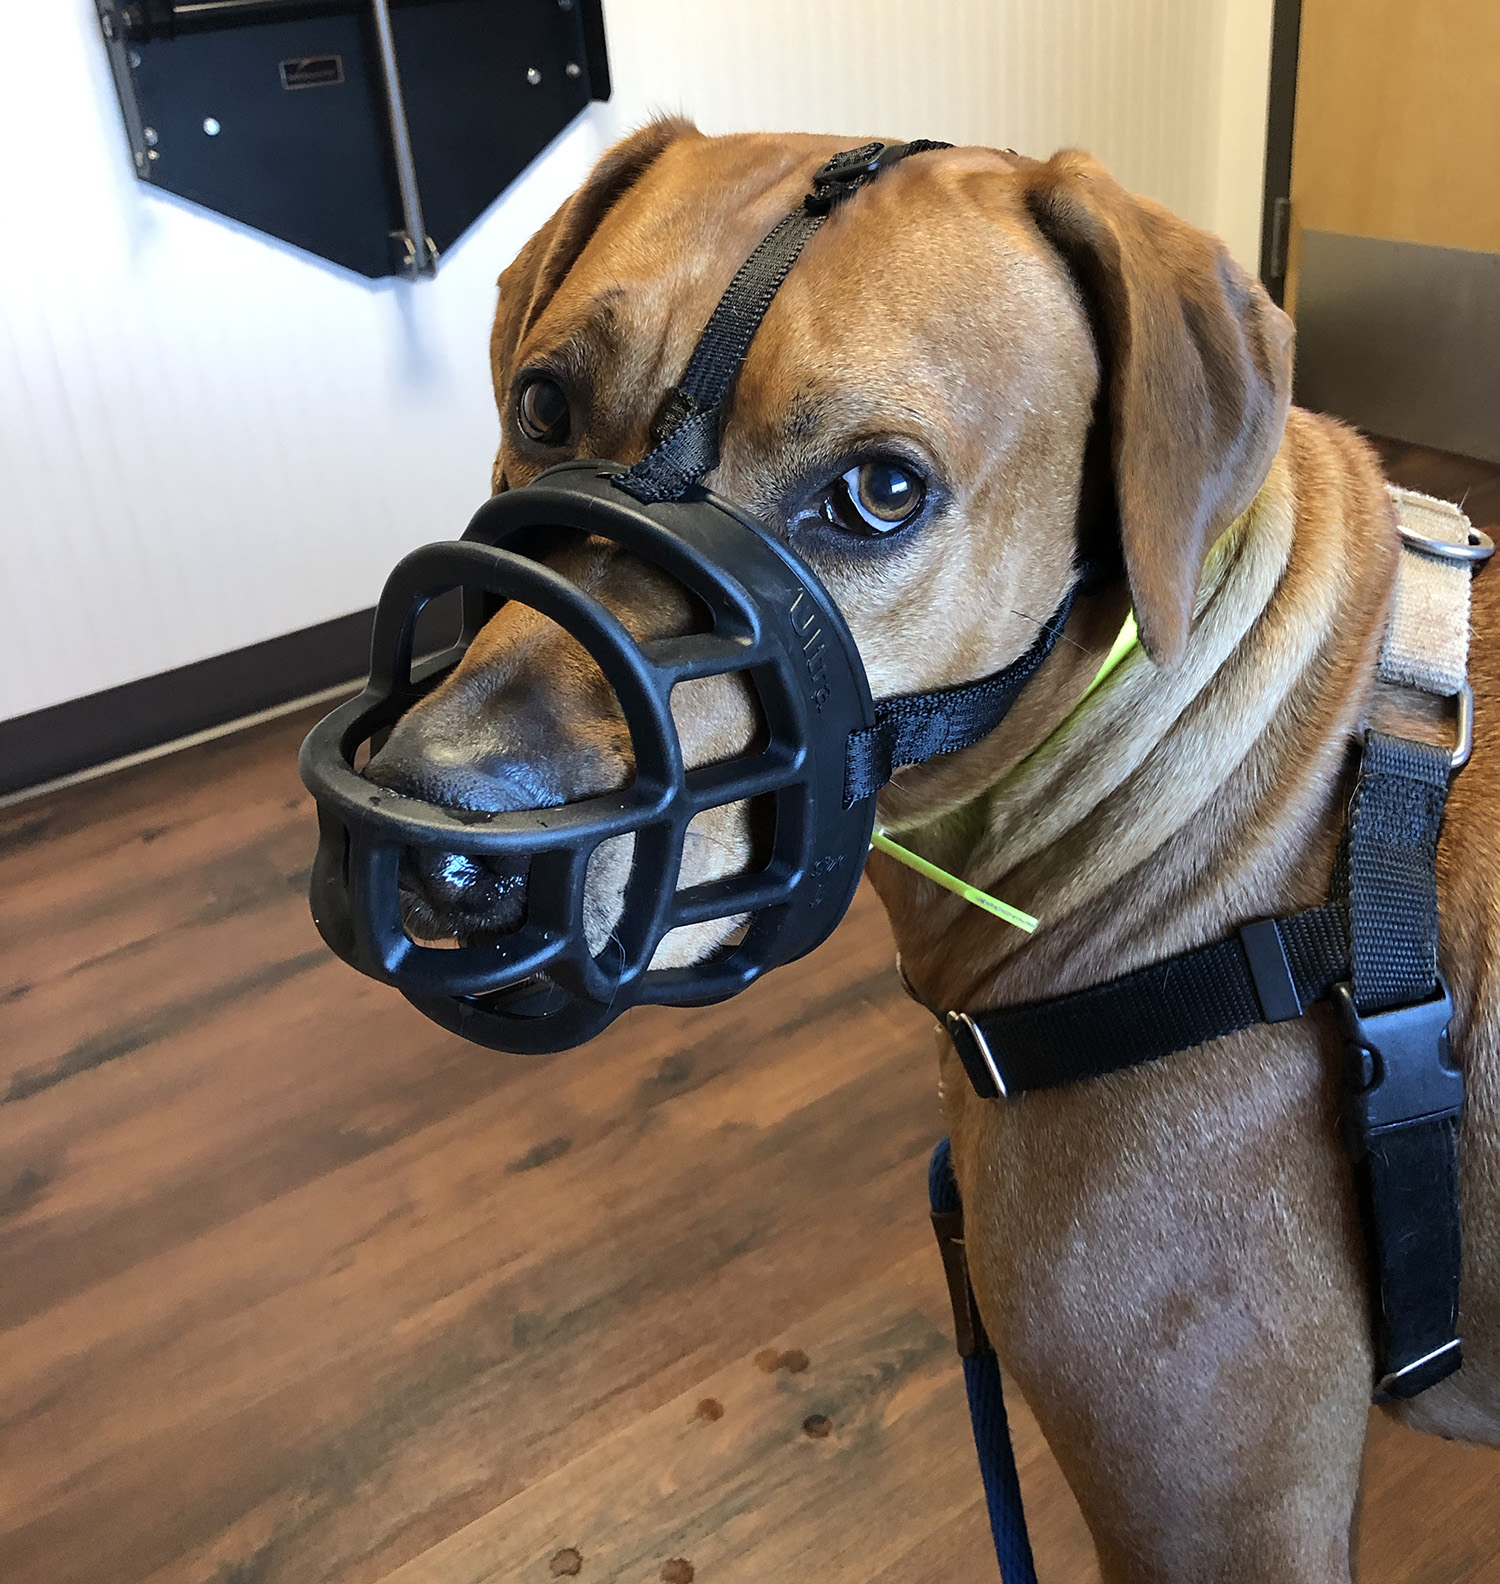 Colombo wears his muzzle at the vet